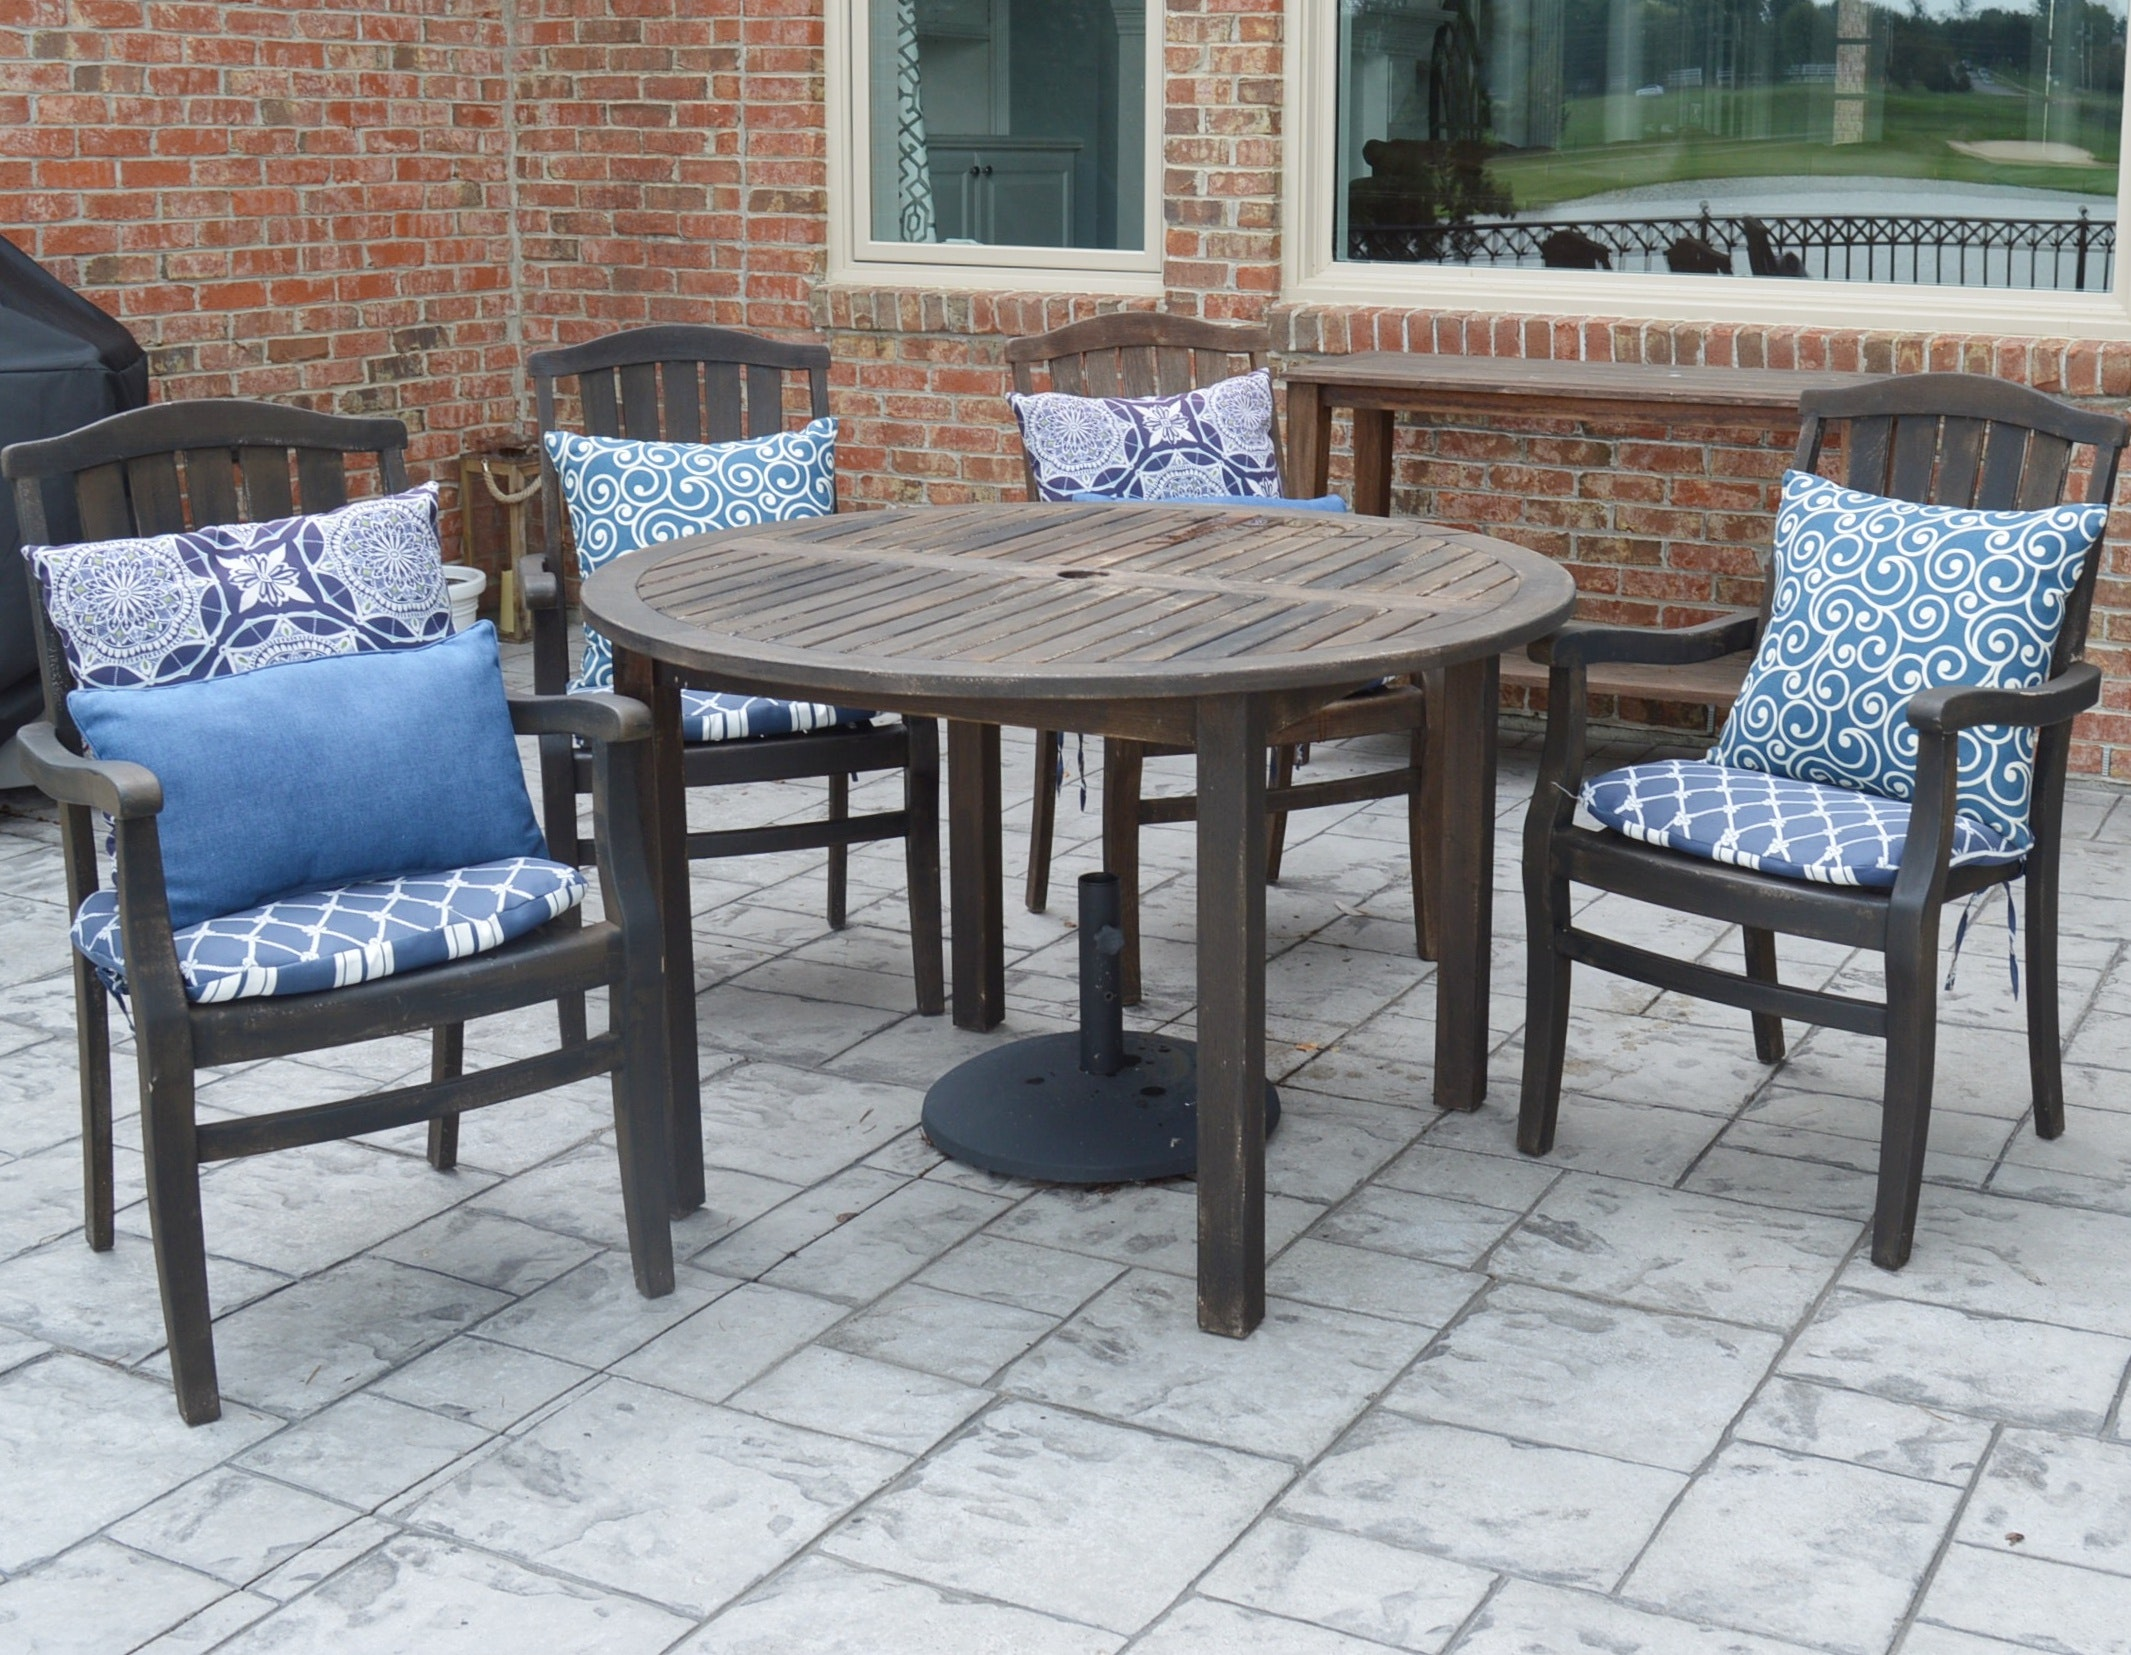 Smith & Hawken Teak Wood Patio Dining Set with Cushions